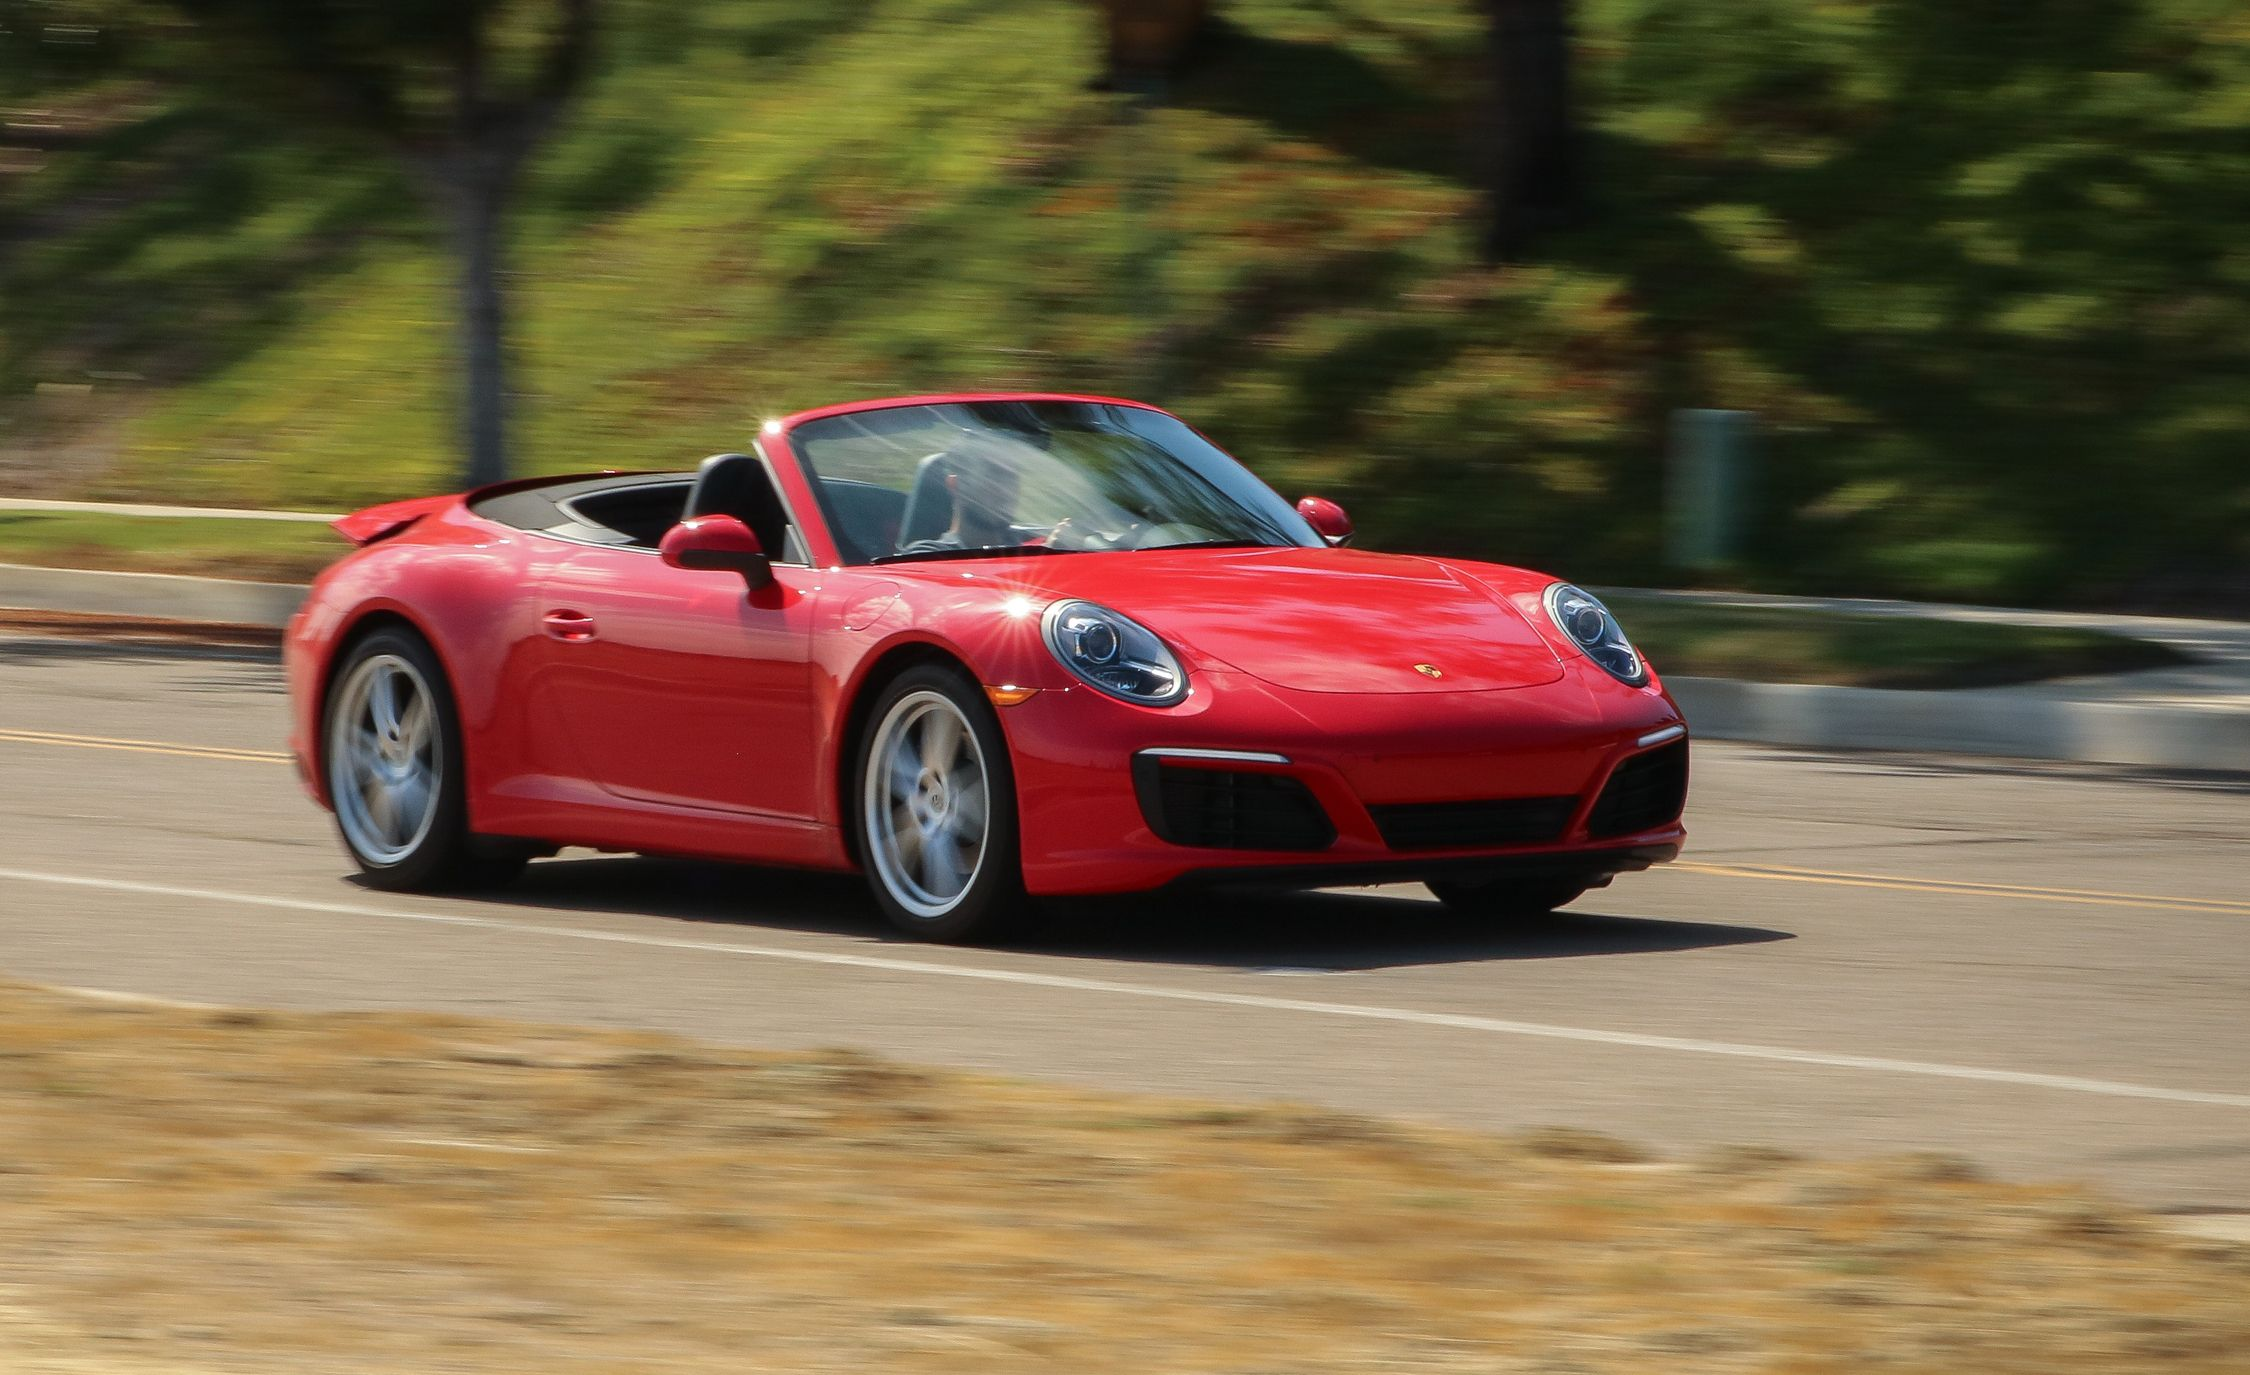 2019 porsche 911 carrera cabriolet pdk placement 1530548991